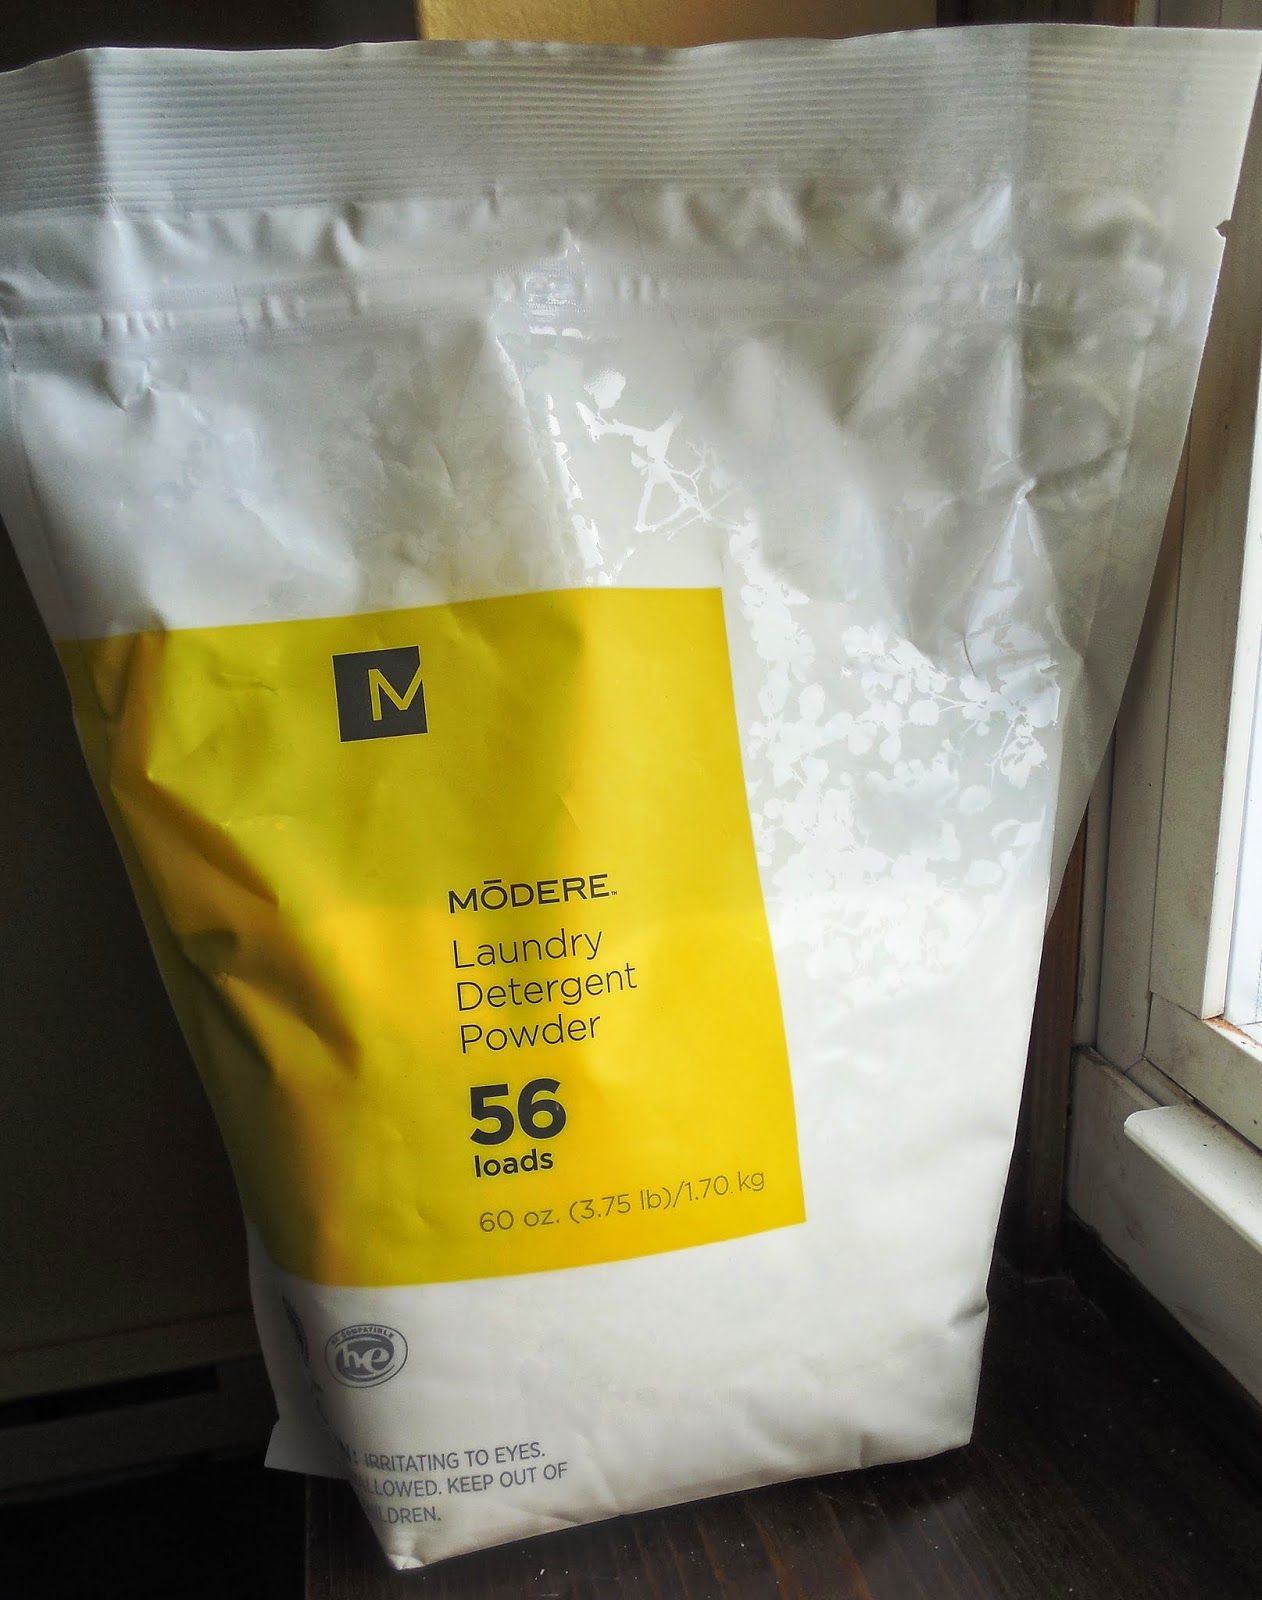 Nutrtitionist Reviews - Modere Laundry Detergent Powder SOCIAL INVITE LINK  www.modere.com/174717  REFERRAL CODE  174717